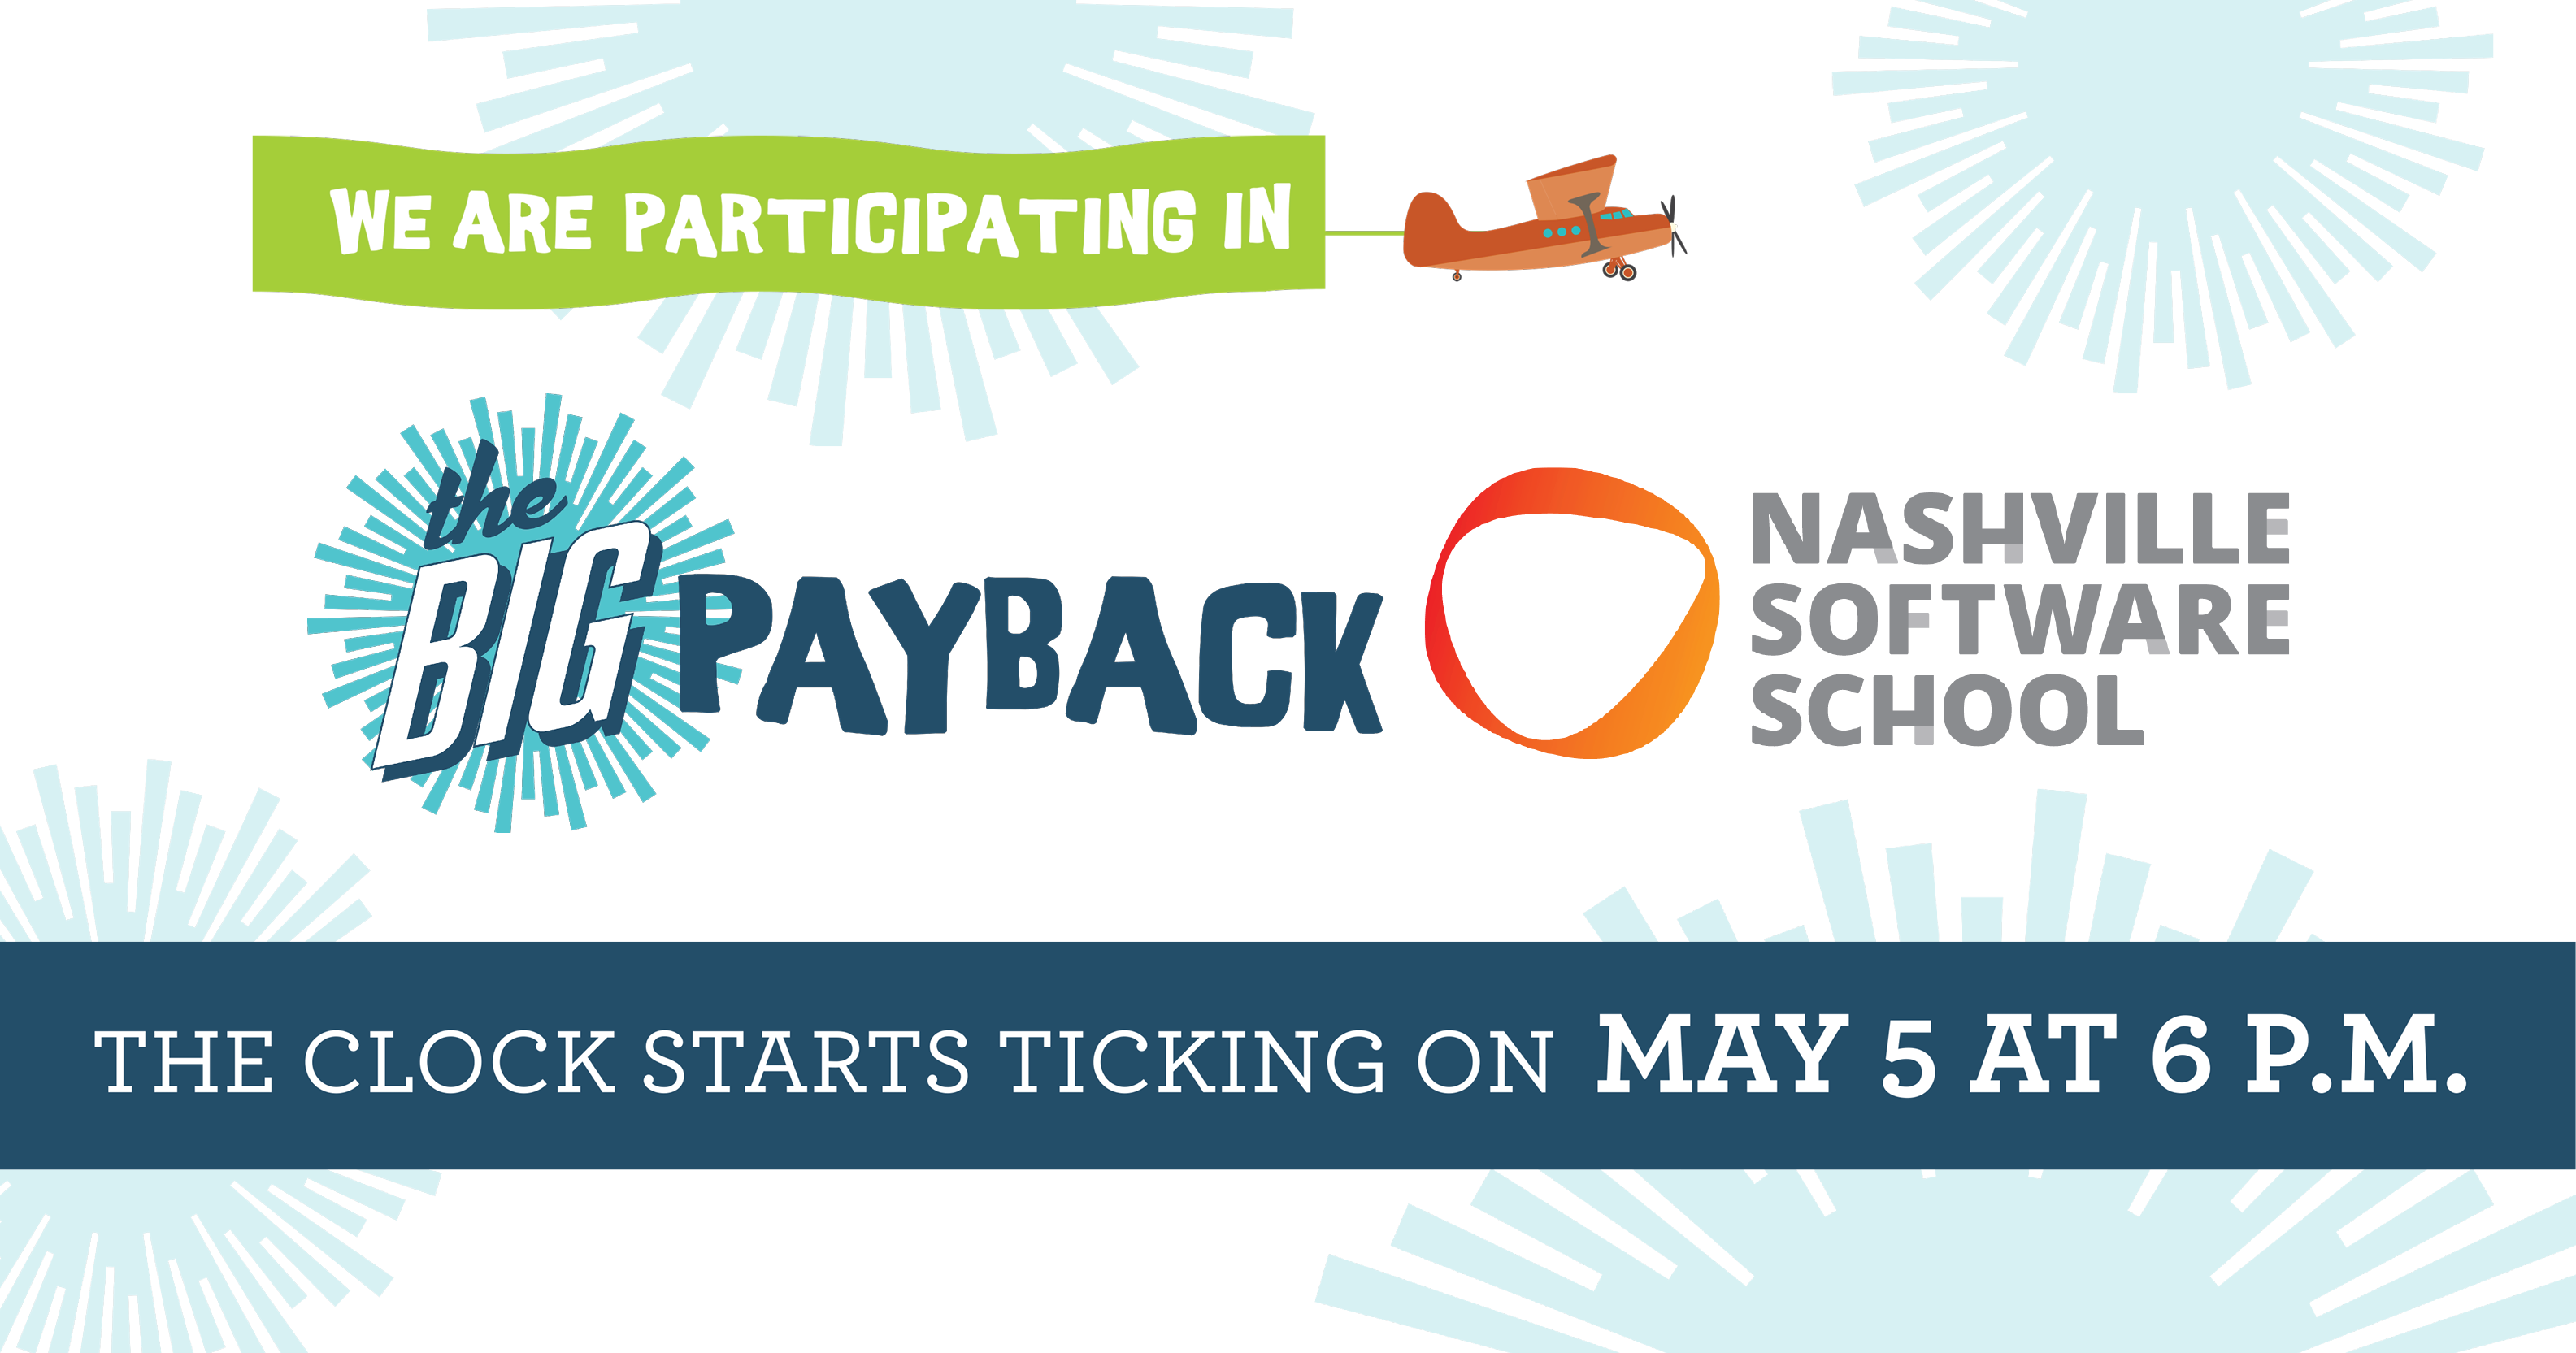 NSS is participating in The Big Payback on May 5-6